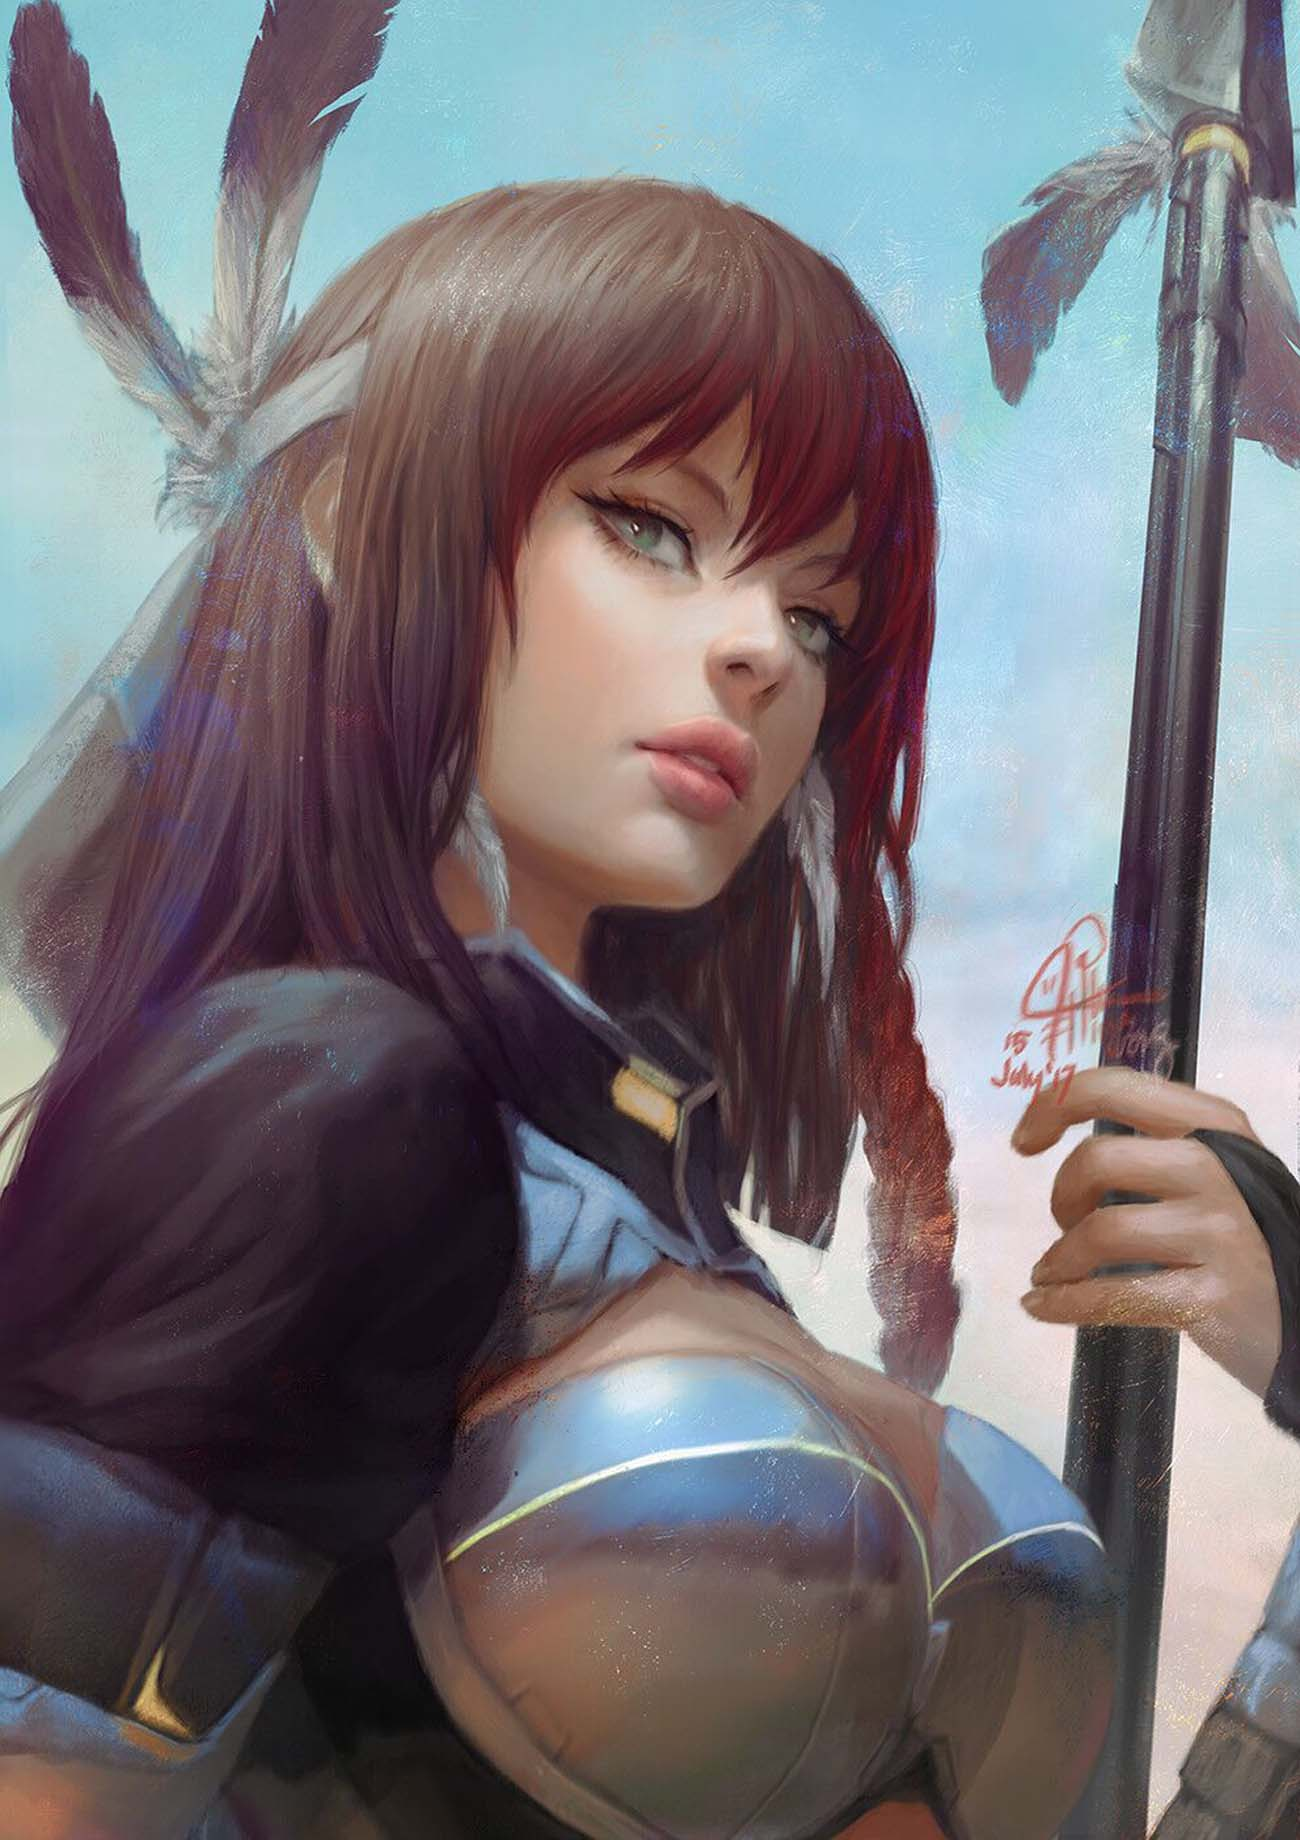 Ina Wong | Paintable.cc Digital Painting Inspiration - Learn the Art of Digital Painting! #digitalpainting #digitalart